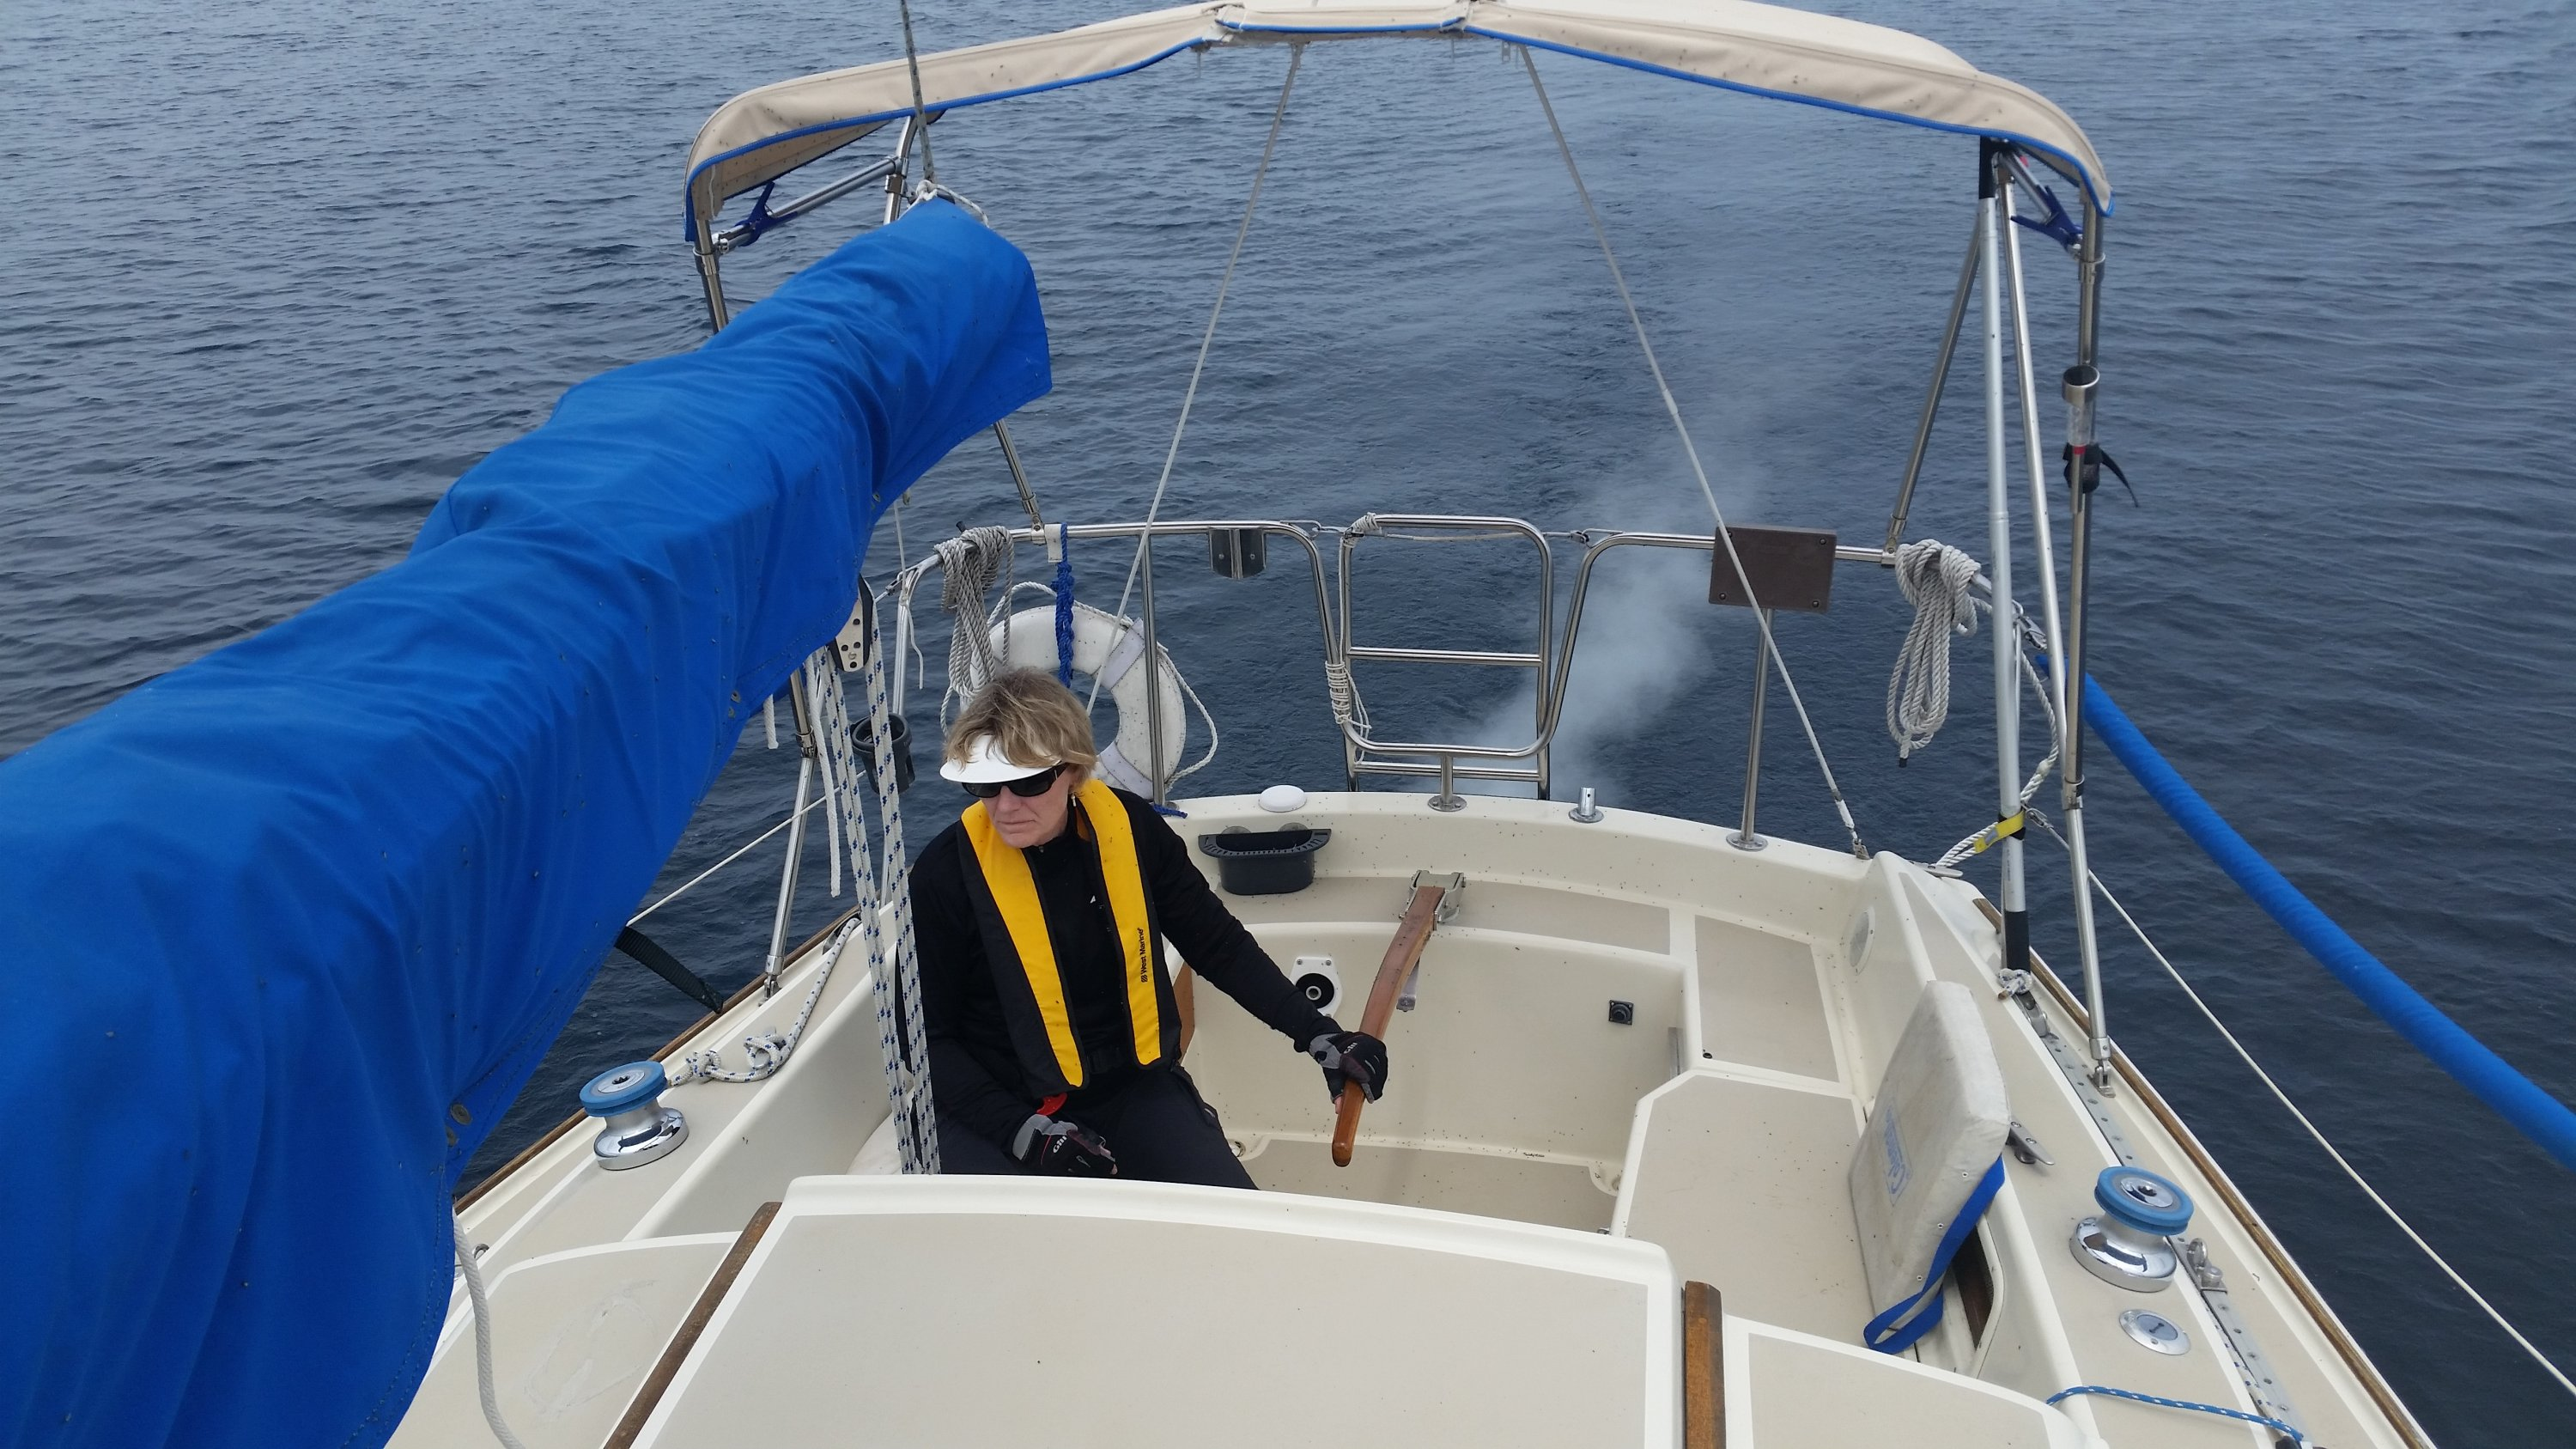 5411 White Smoke at tailpipe | SailboatOwners com Forums